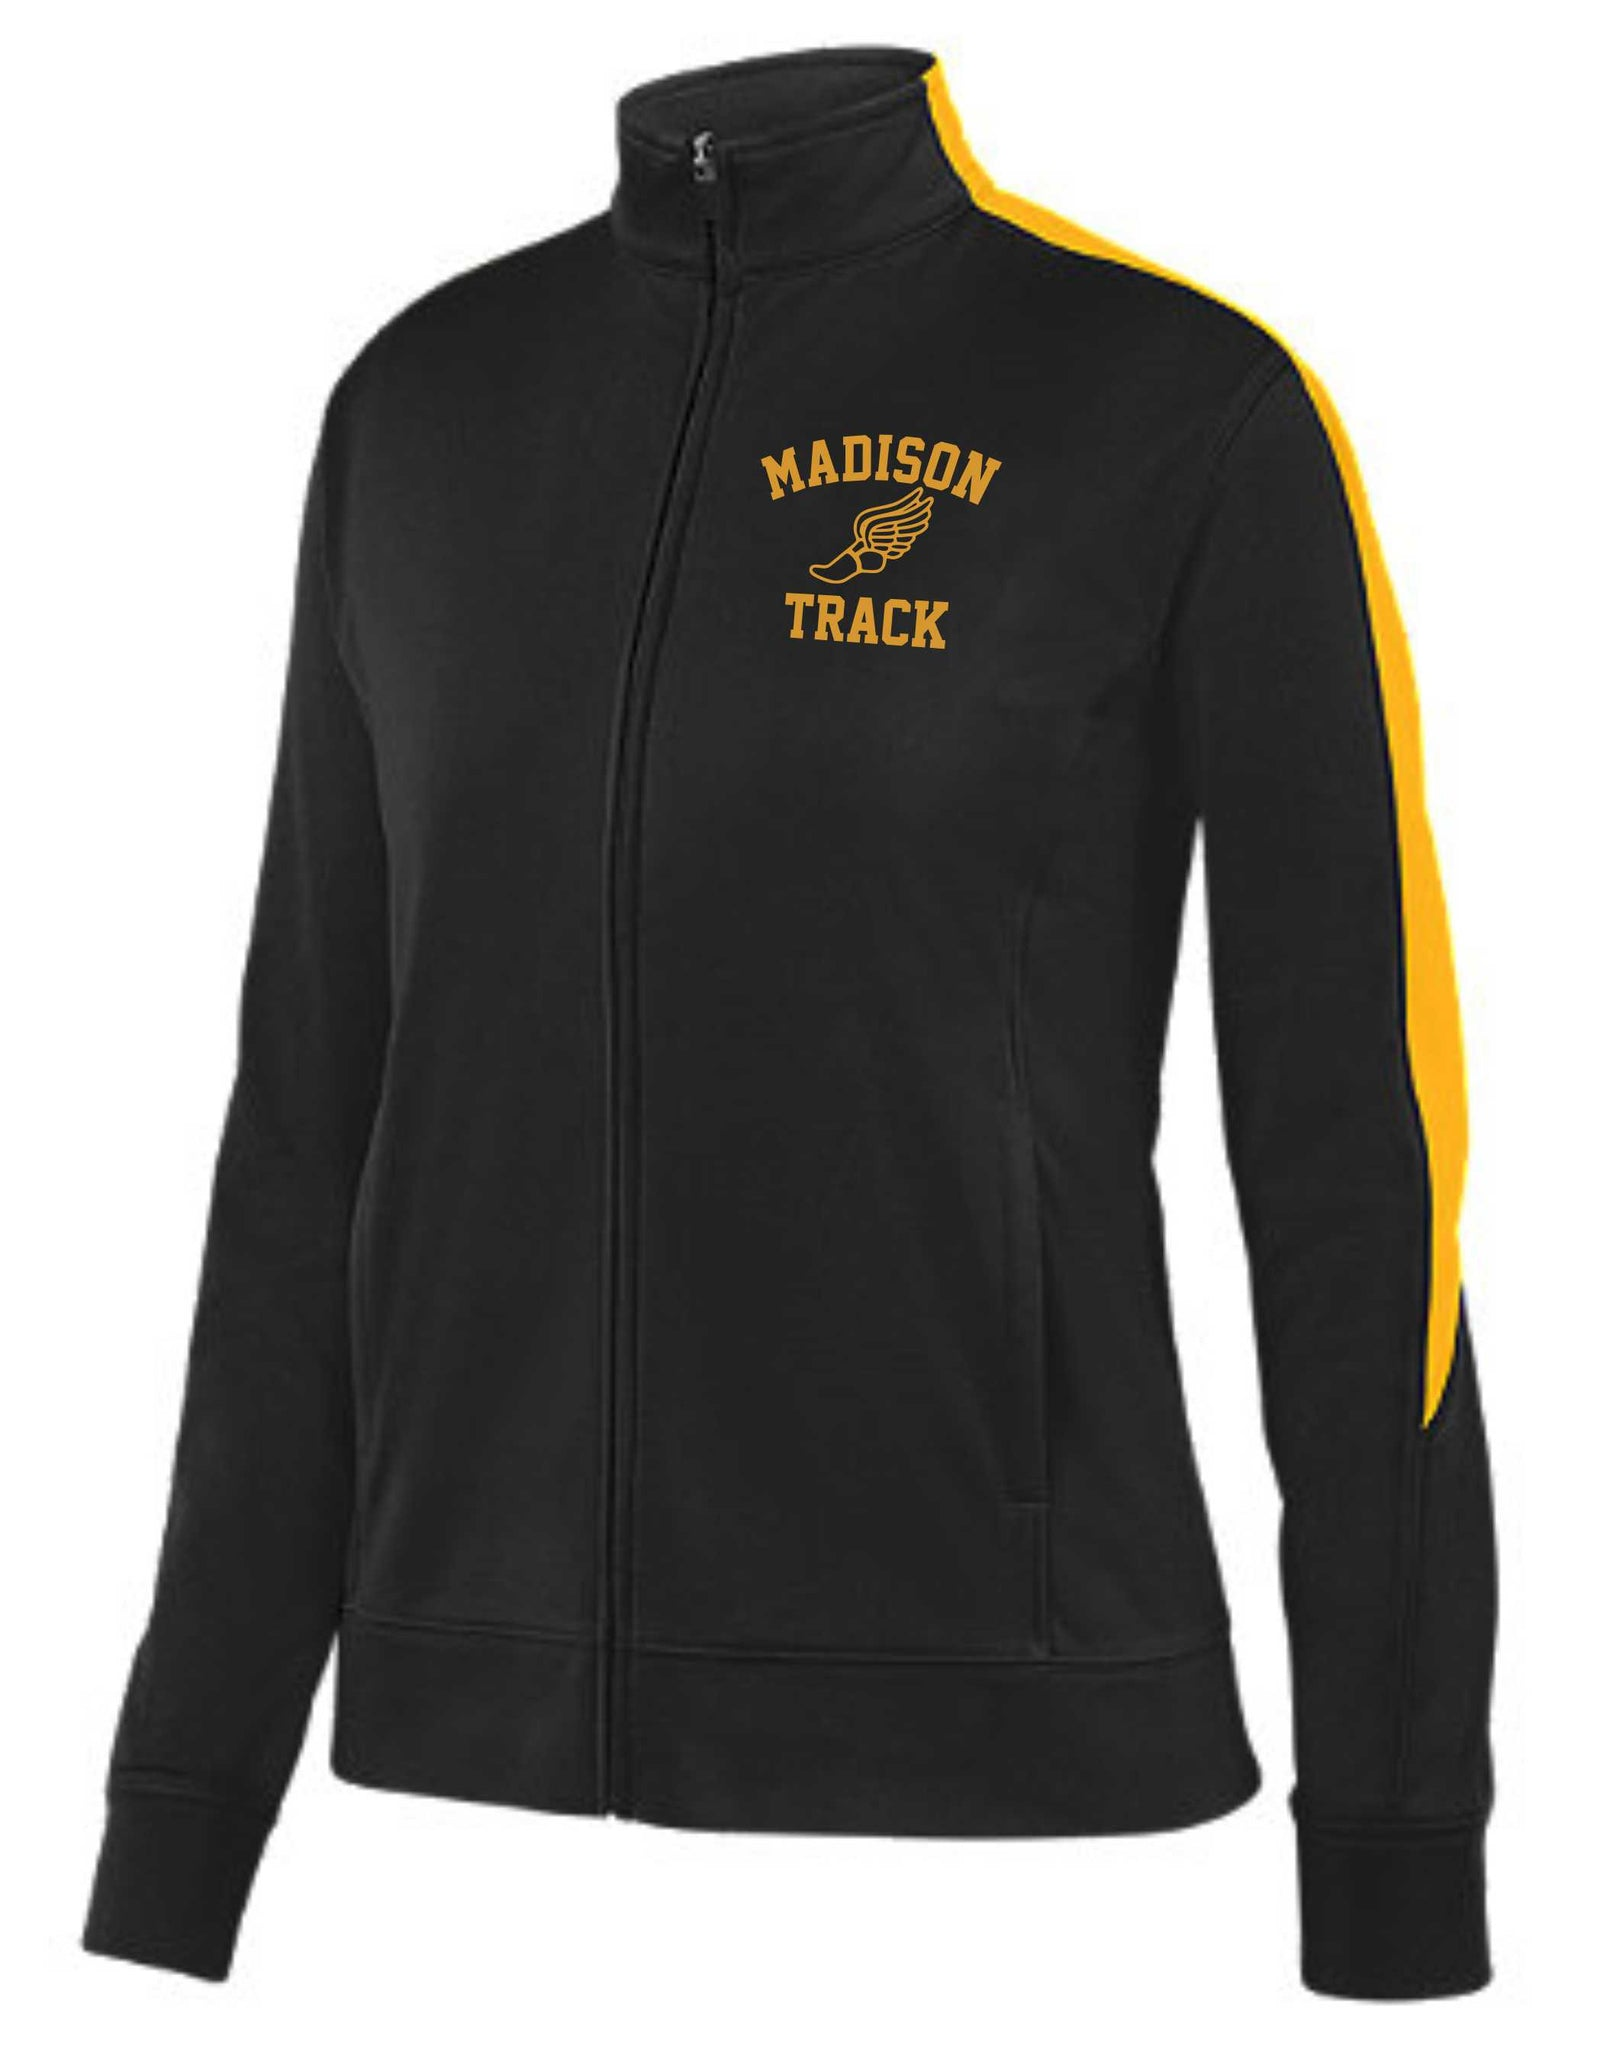 Womens James Madison Track Jacket